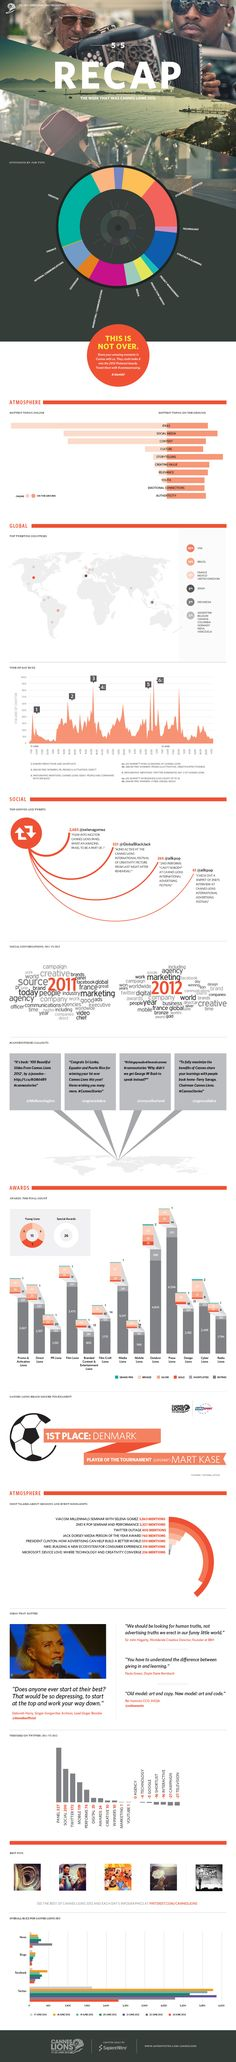 The 2012 Cannes Lions Daily #Infographic Project by SapientNitro #5 of #5